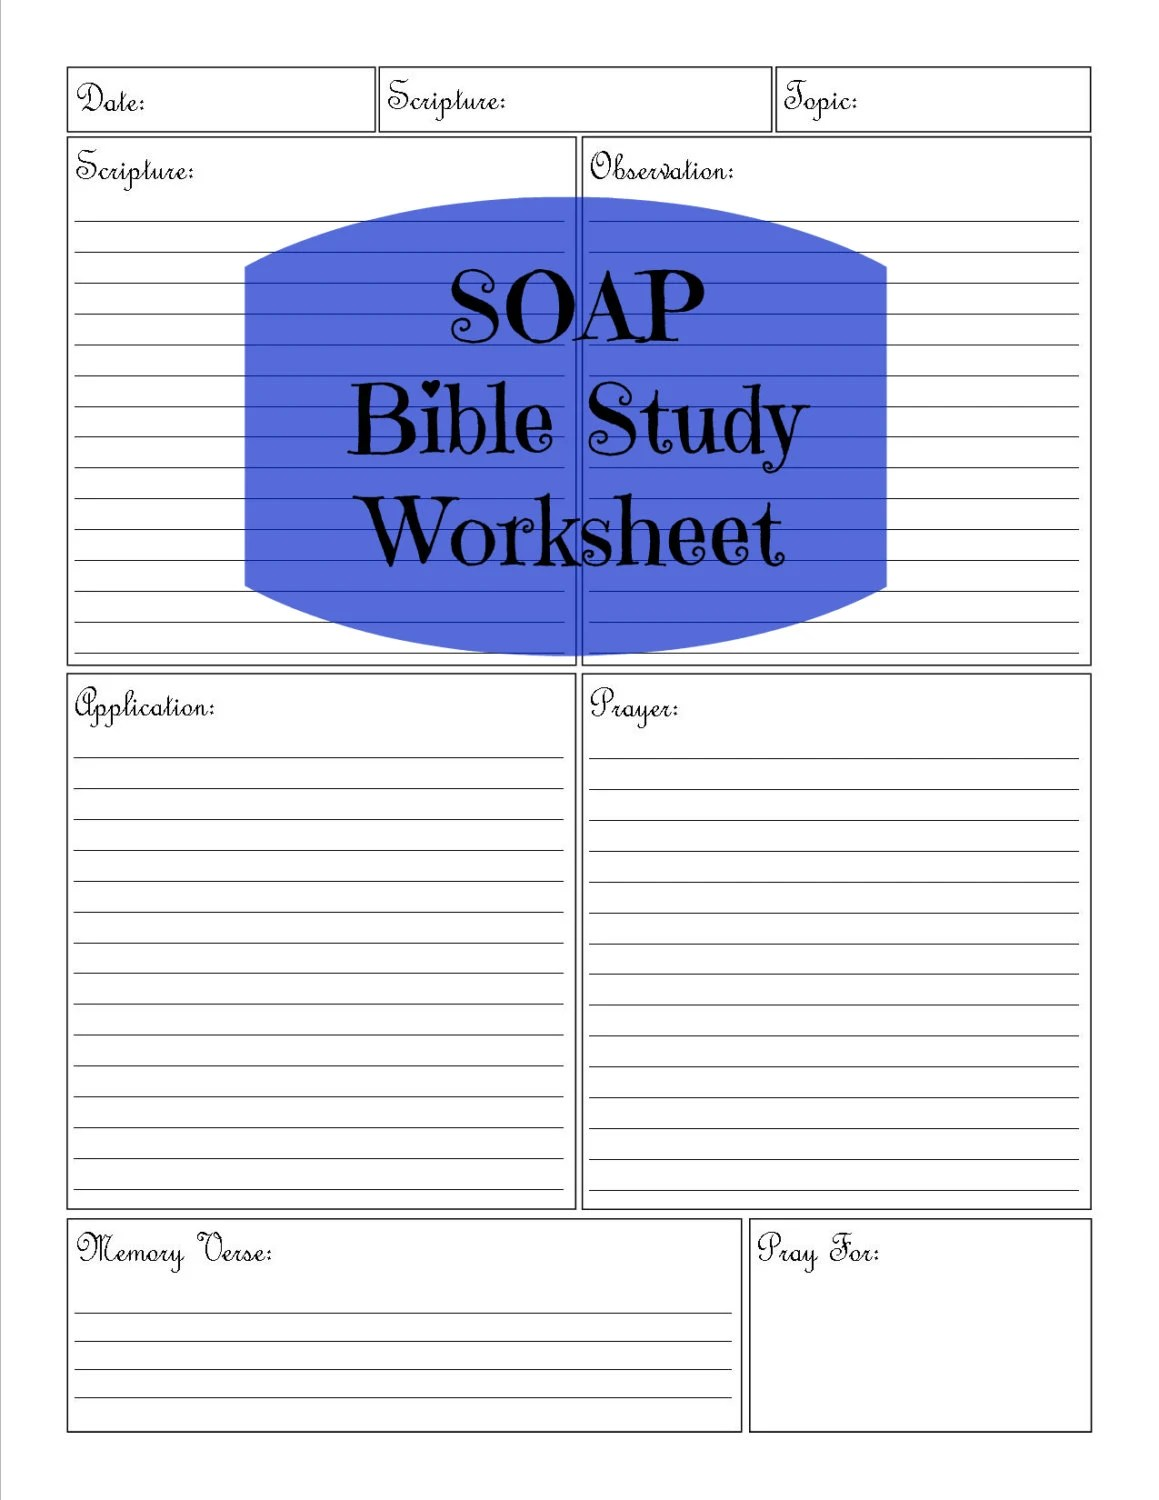 Soap Bible Study Worksheet